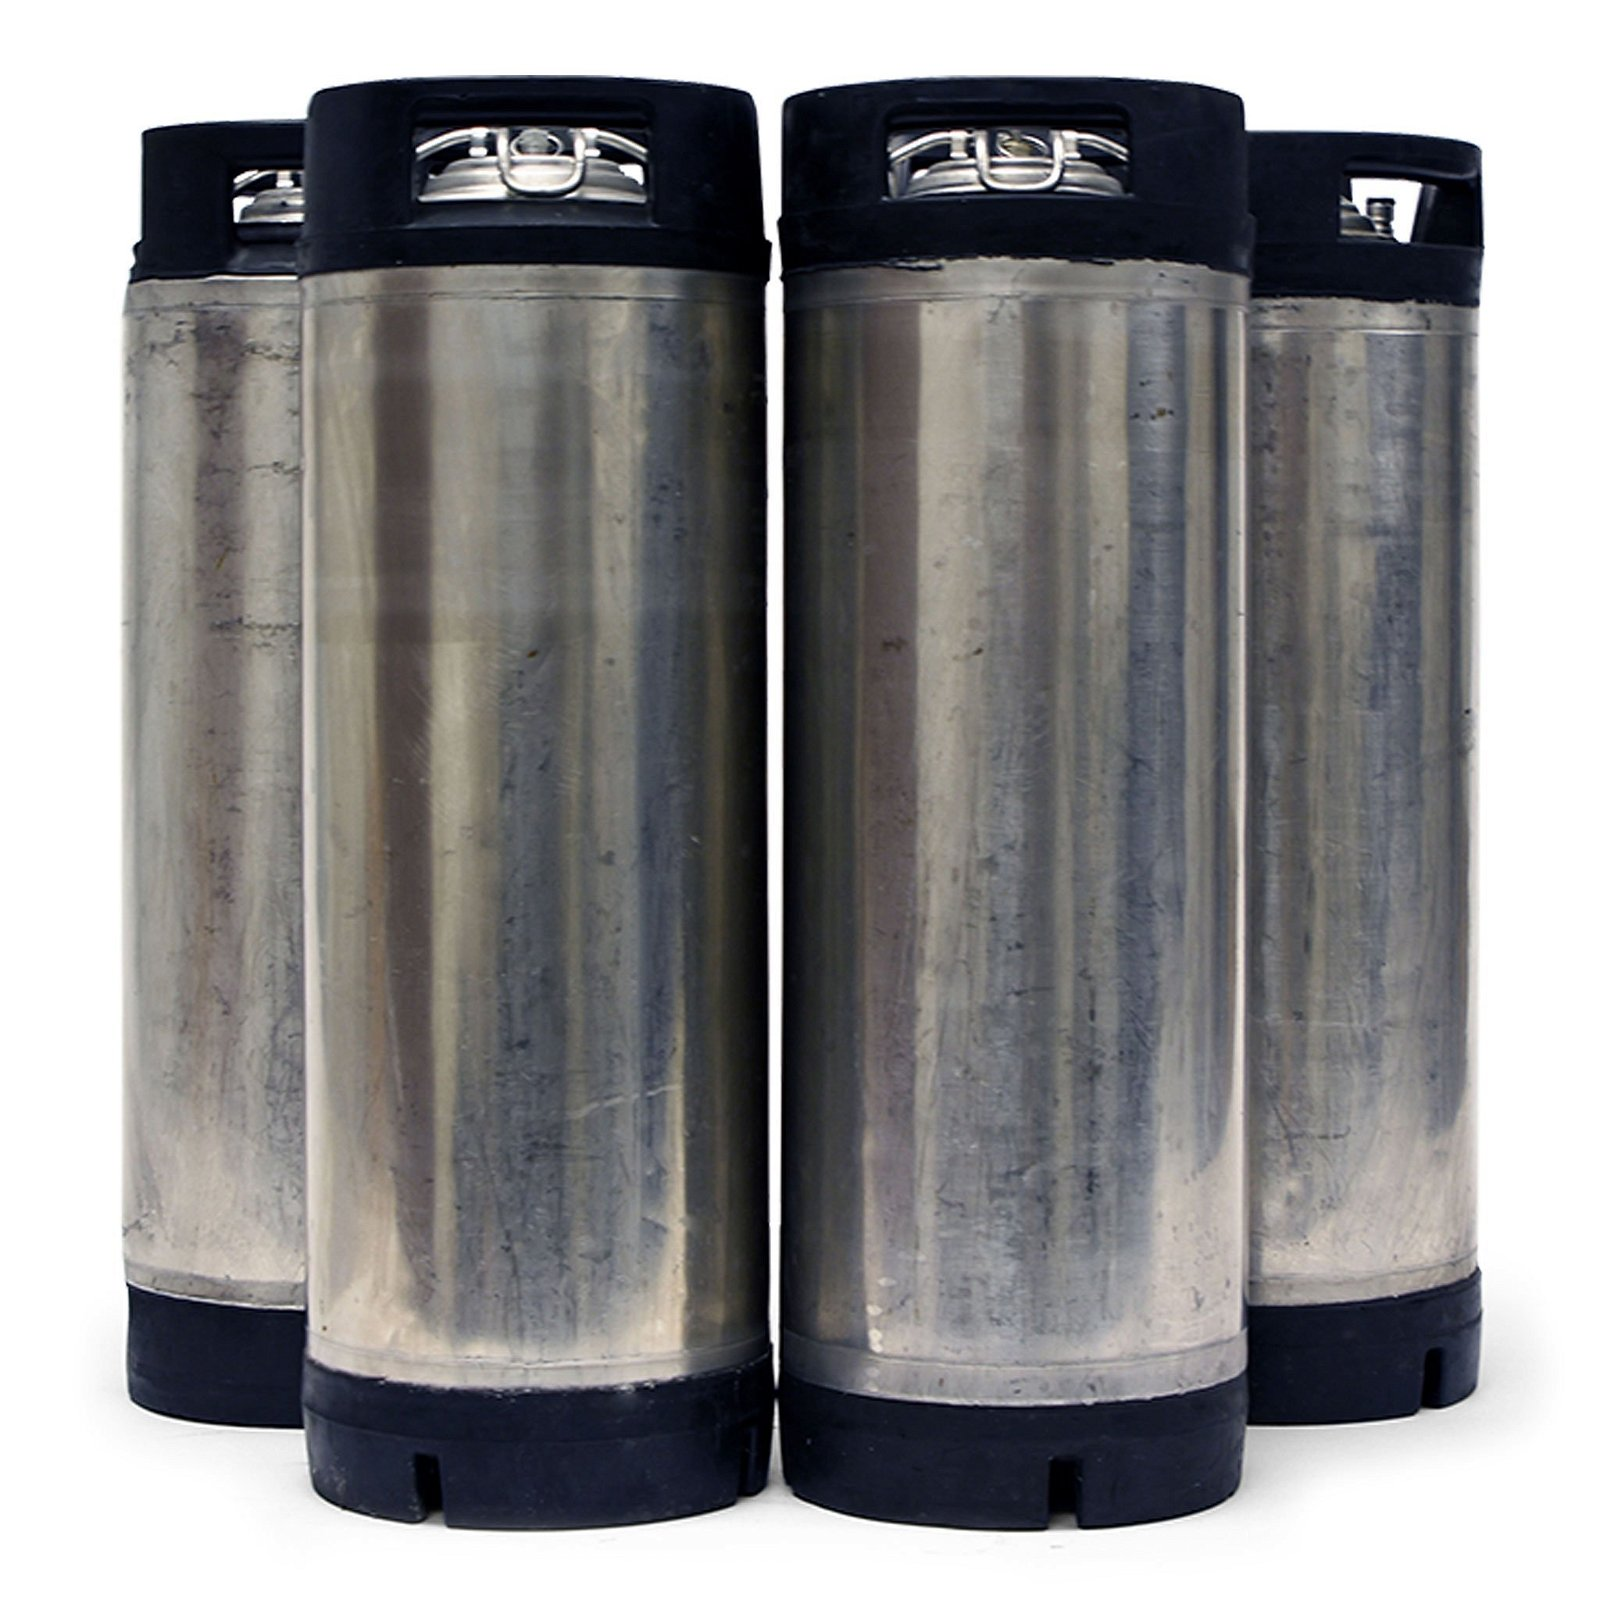 Reconditioned 5 Gallon Ball Lock Kegs (Four Pack)